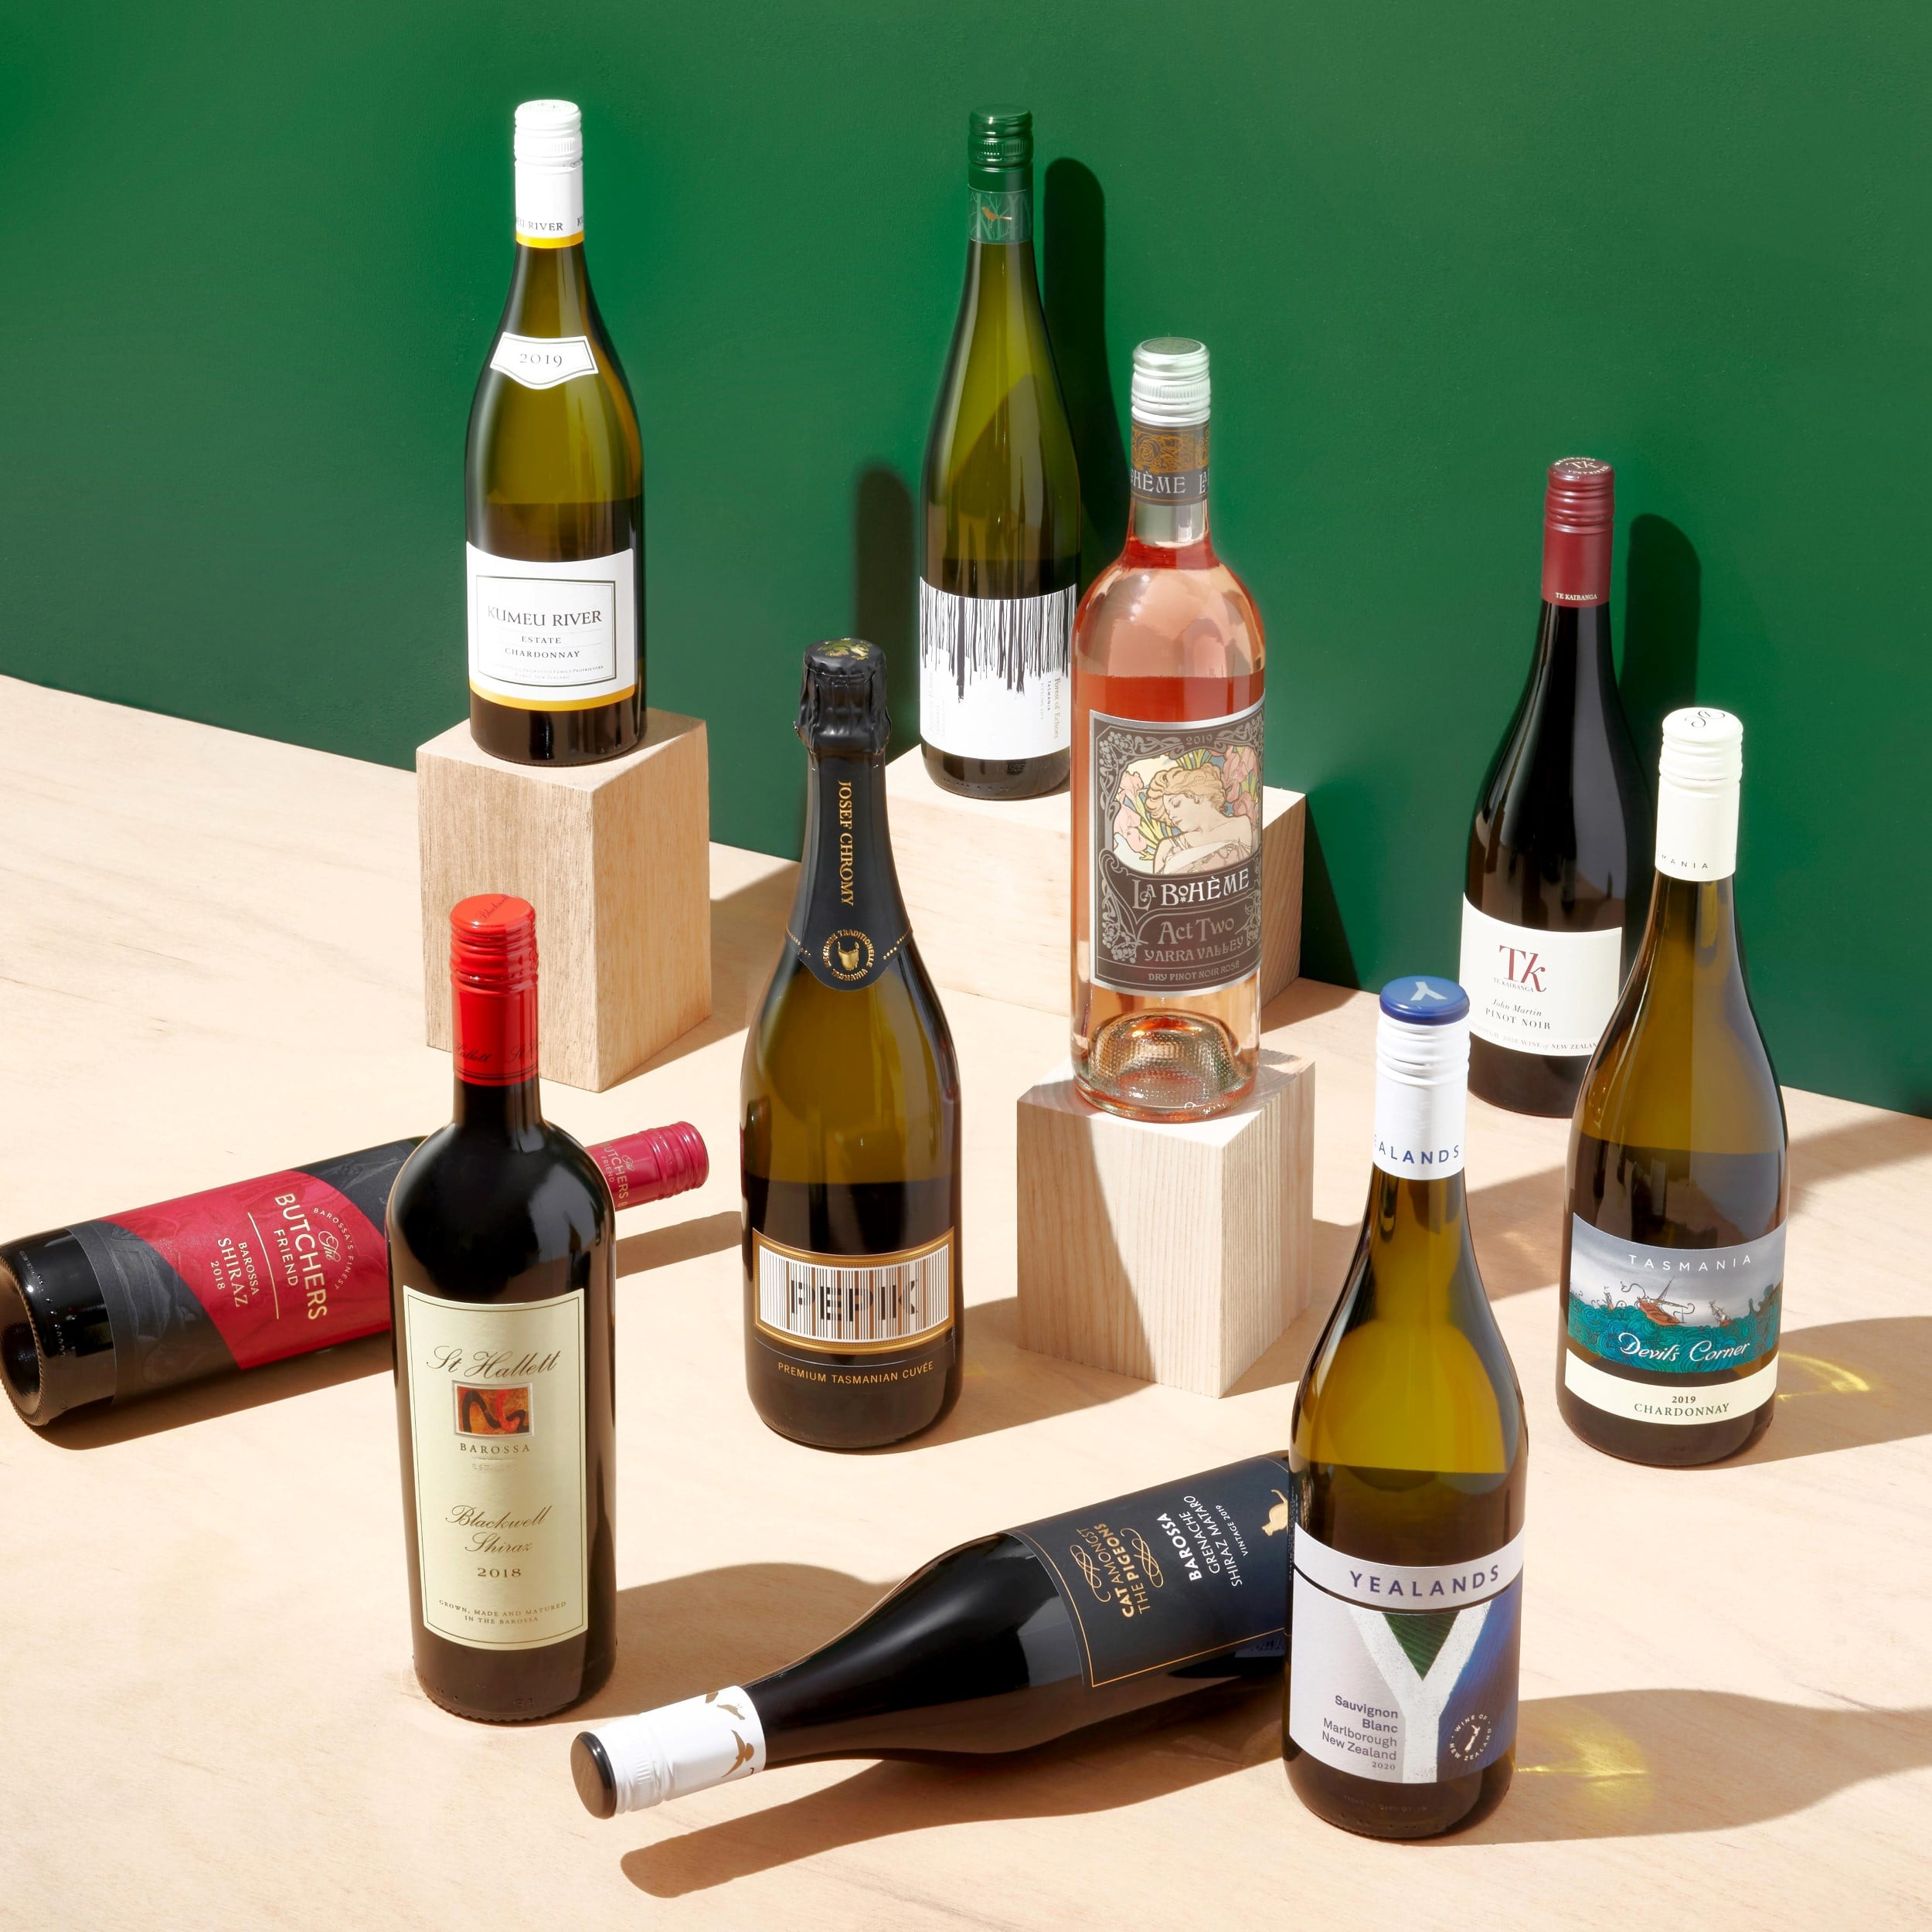 The best wines under $20 according to Dan Murphy's Decoded Wine Awards – including a $7 Pinot Noir